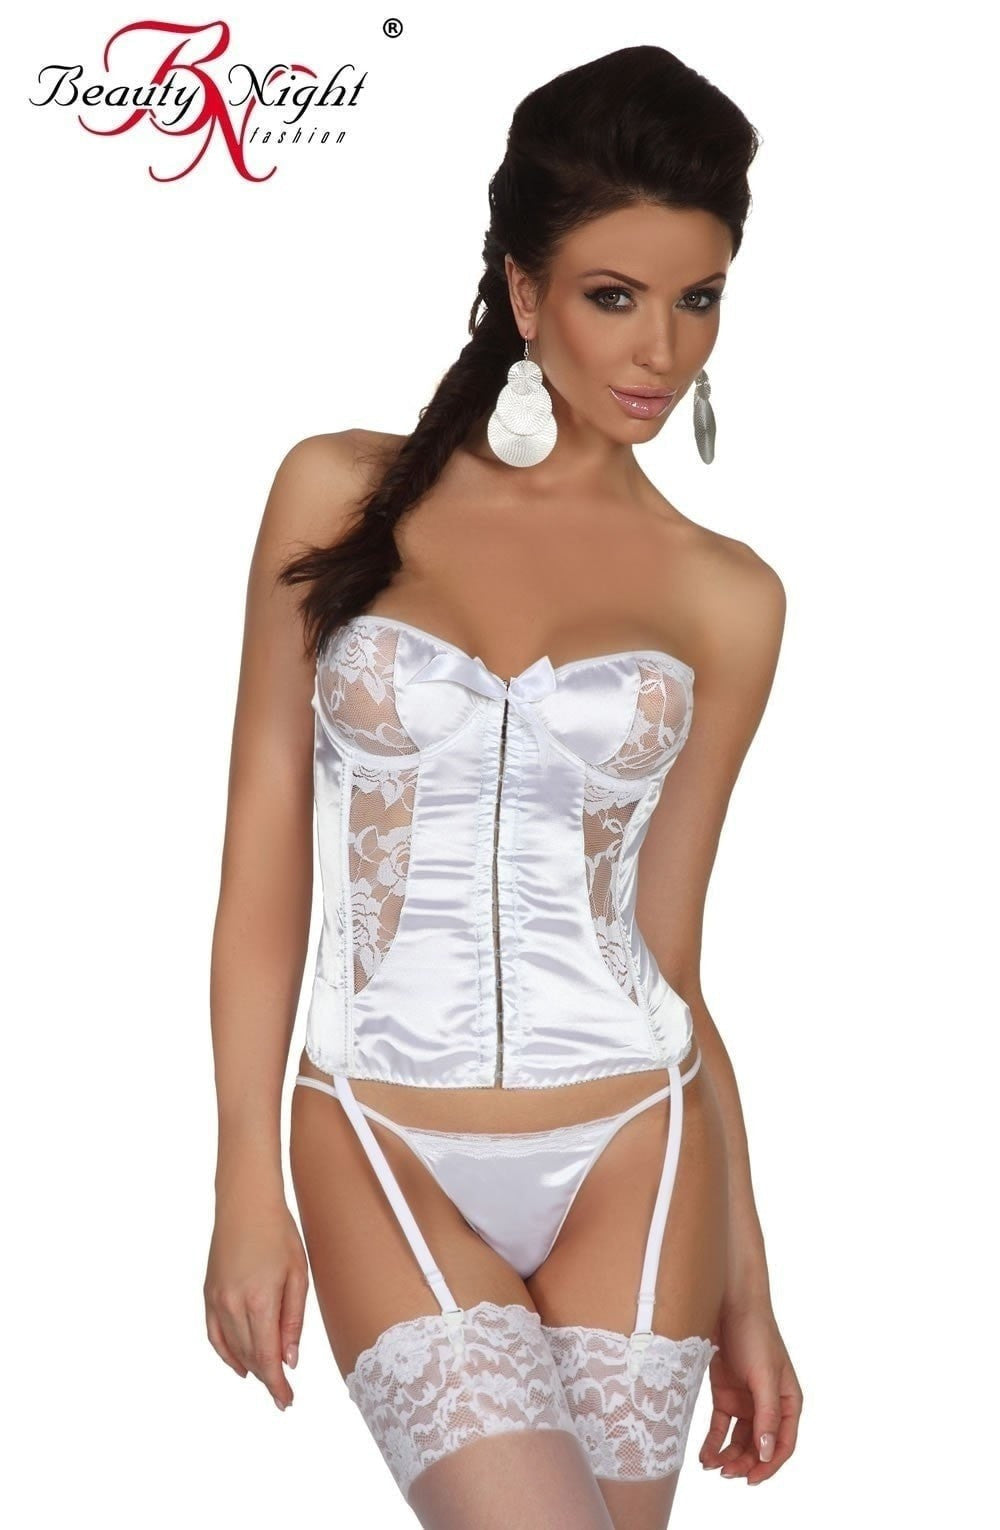 Beauty Night Patricia Corset Set (White) - Corsets - Beauty Night - Charm and Lace Boutique